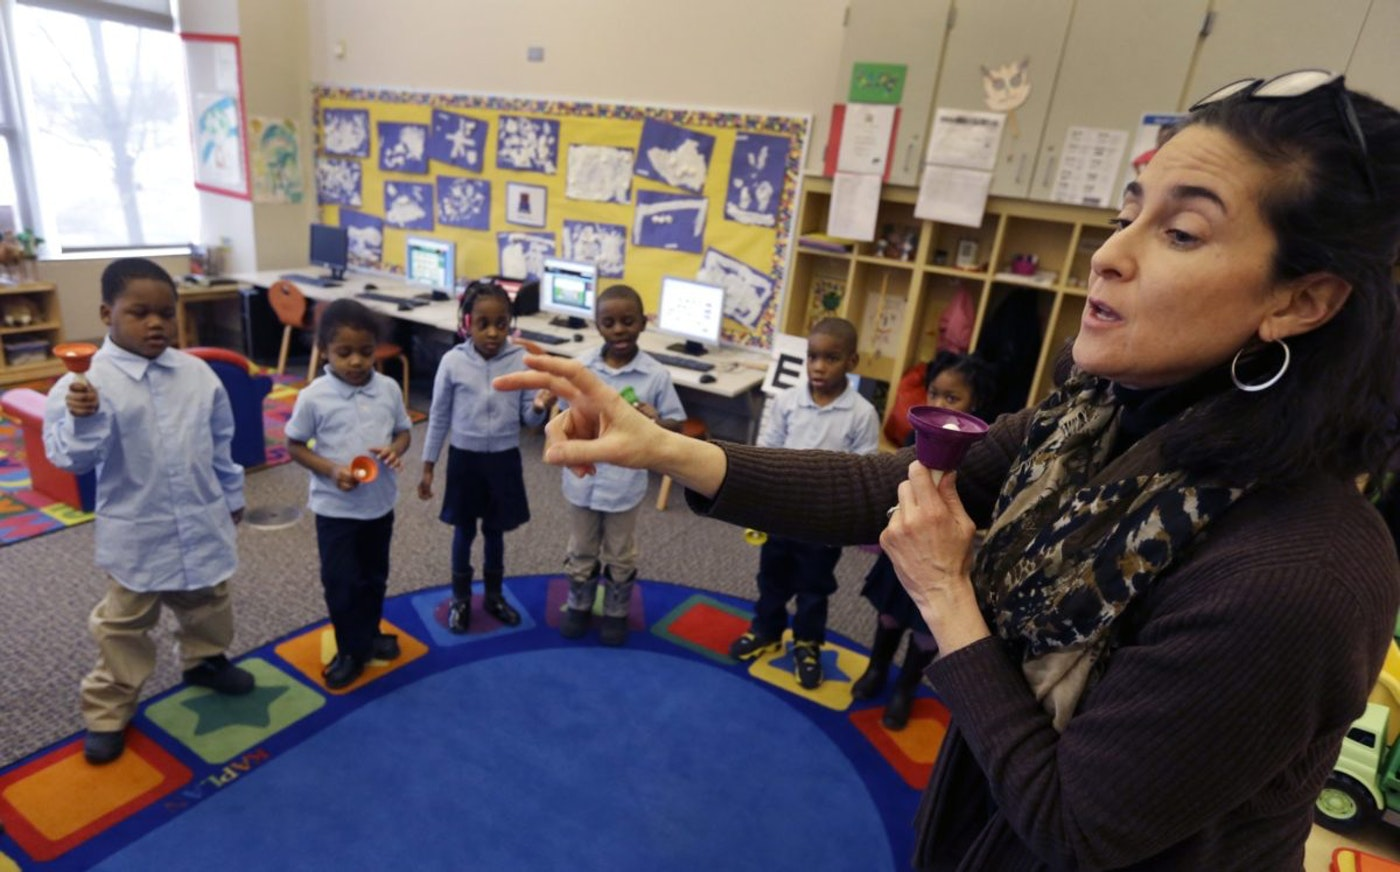 In this Feb. 25, 2014 photo, Golightly Education Center teacher Amy Andersen-Prebo leads her class in a hand bell song in Detroit. After years without comprehensive sports and arts/music programs, those are now being restored at all DPS elementary and middle schools, thanks in part to foundation grants. (AP Photo/Carlos Osorio)